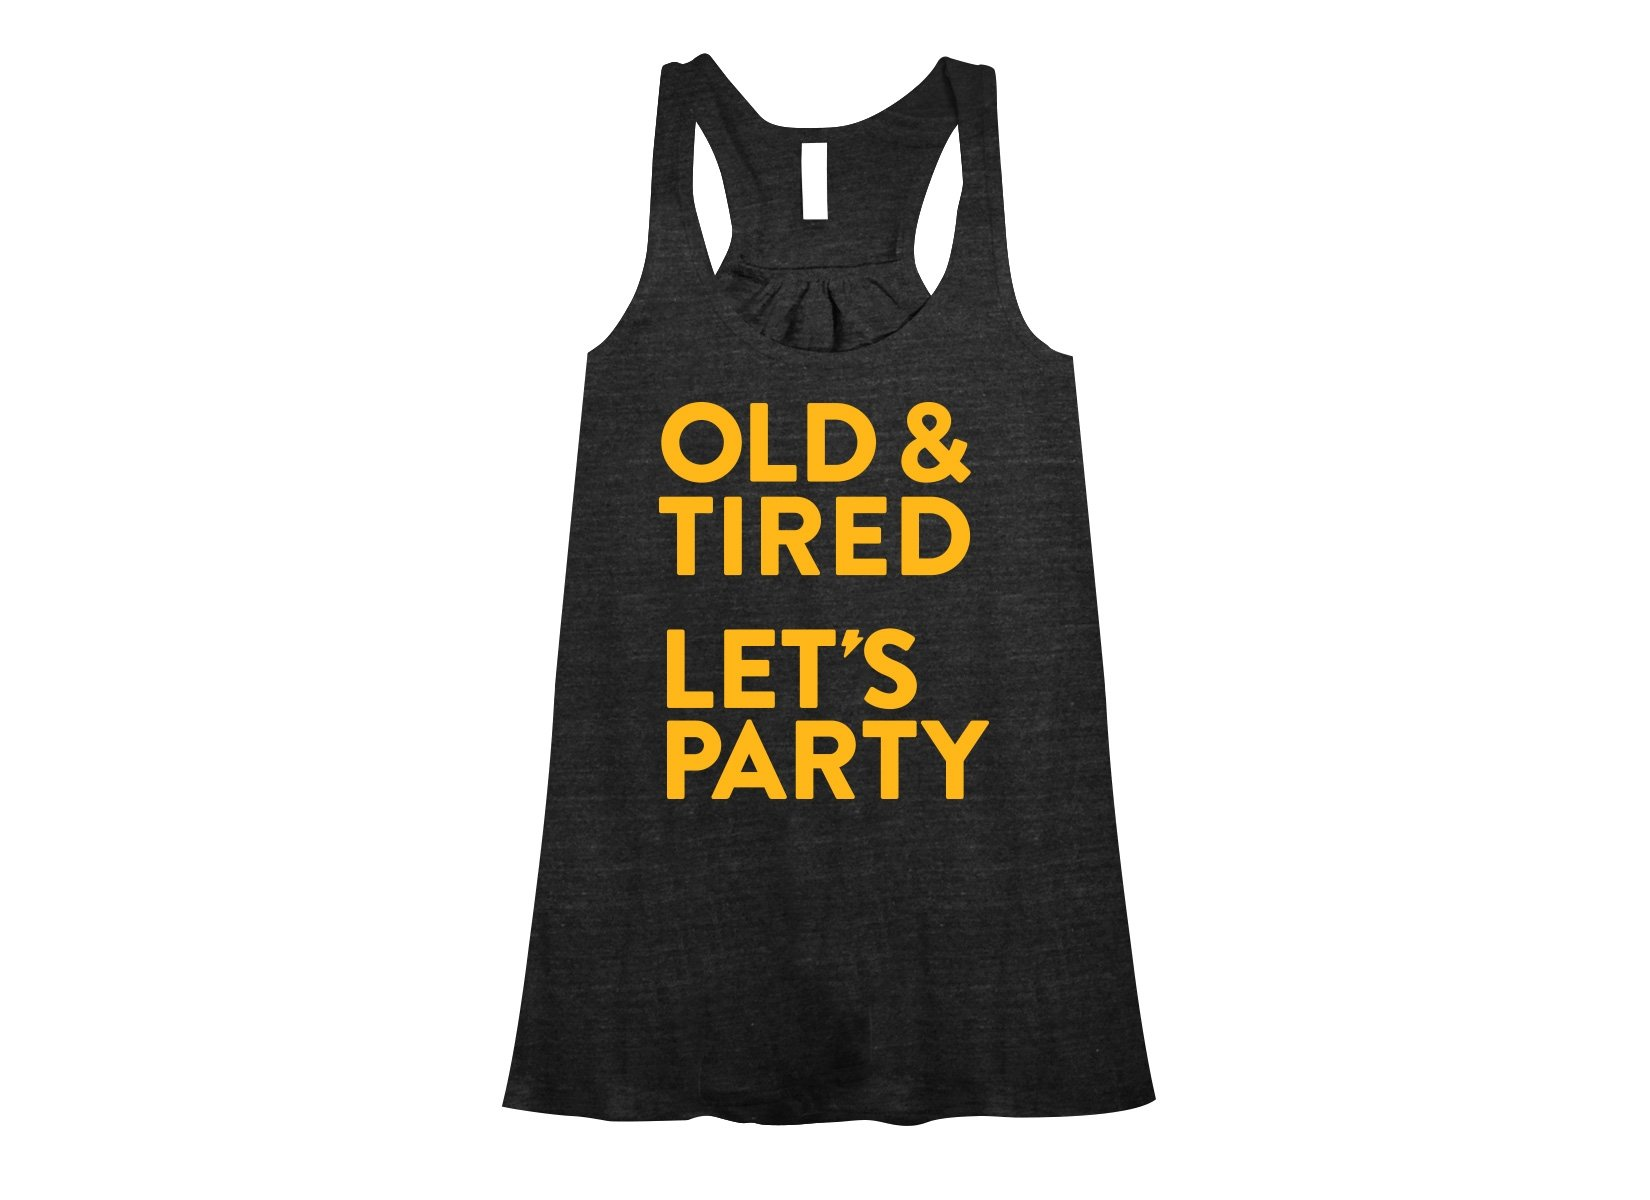 Old & Tired Let's Party on Womens Tanks T-Shirt